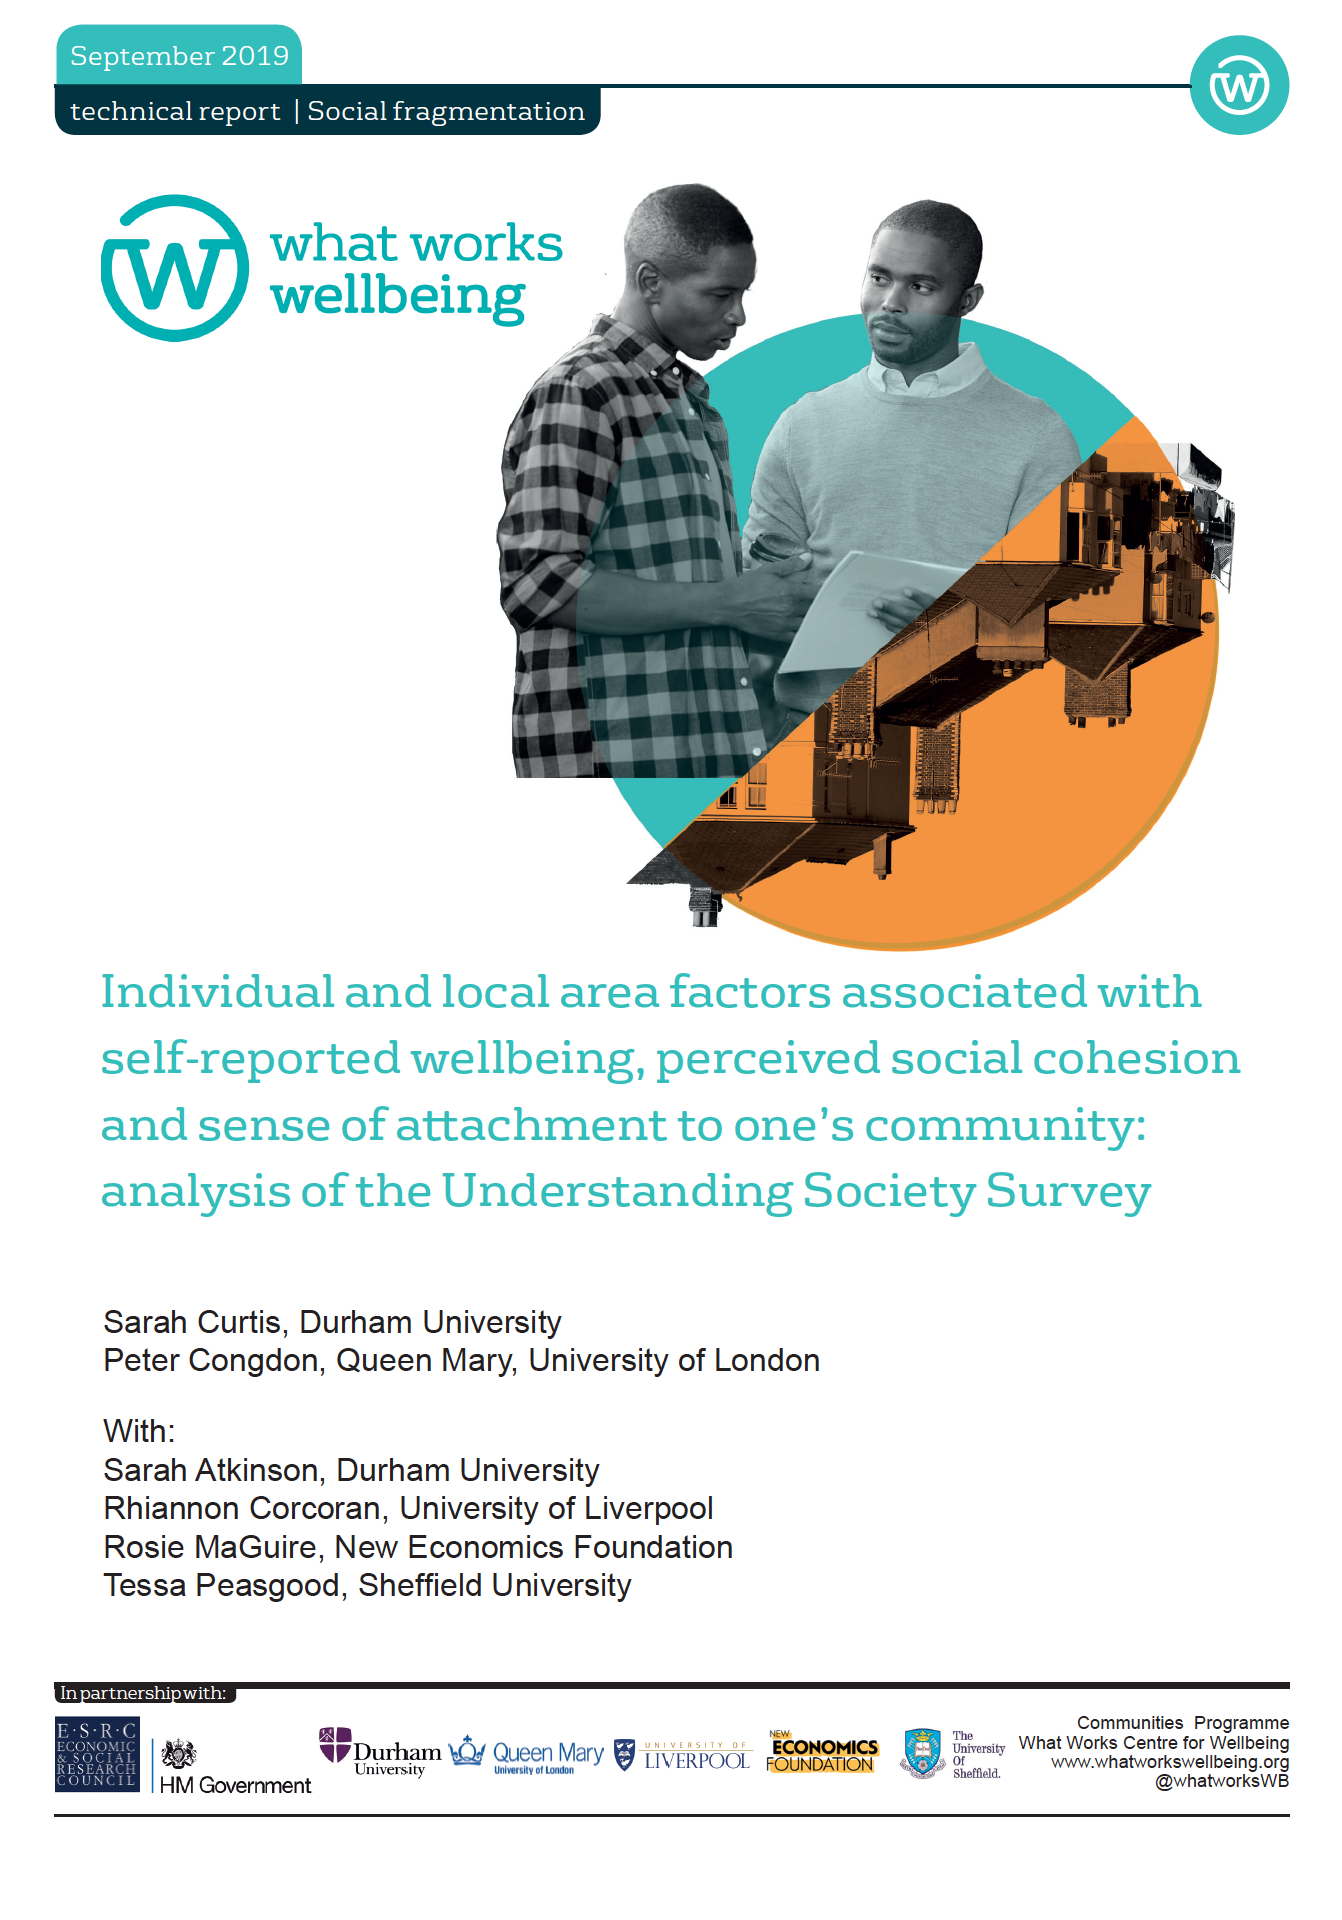 Social cohesion and community attachment: analysis of the Understanding Society Survey